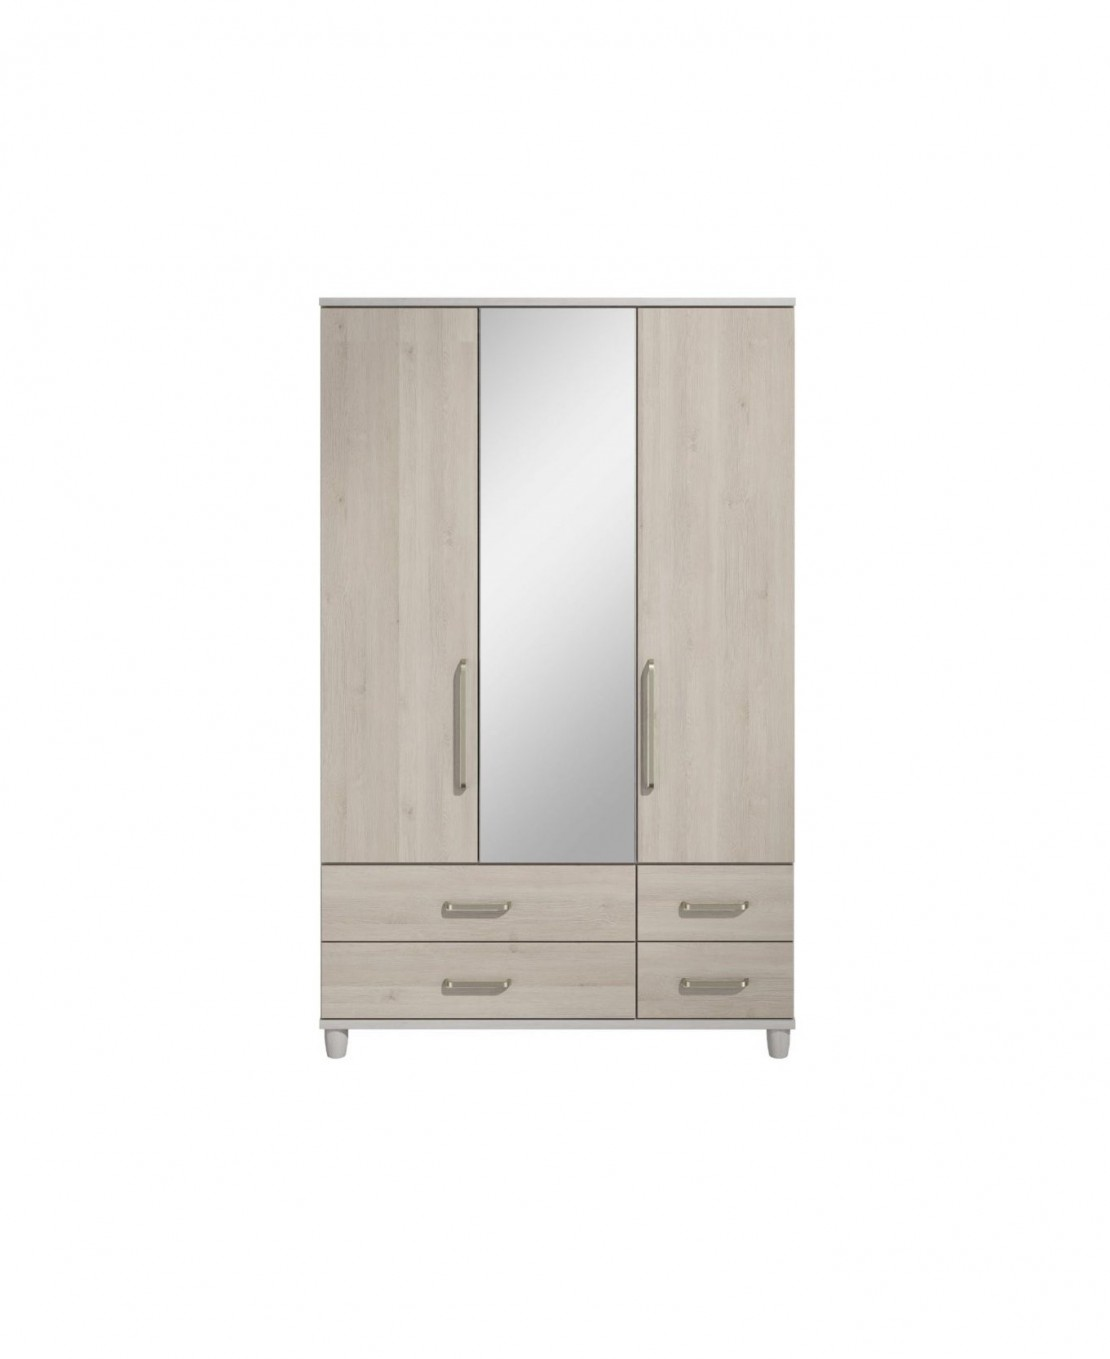 /_images/product-photos/kt-furniture-deco-3-door-centre-mirrored-gents-robe-cappuccino-elm-a.jpg